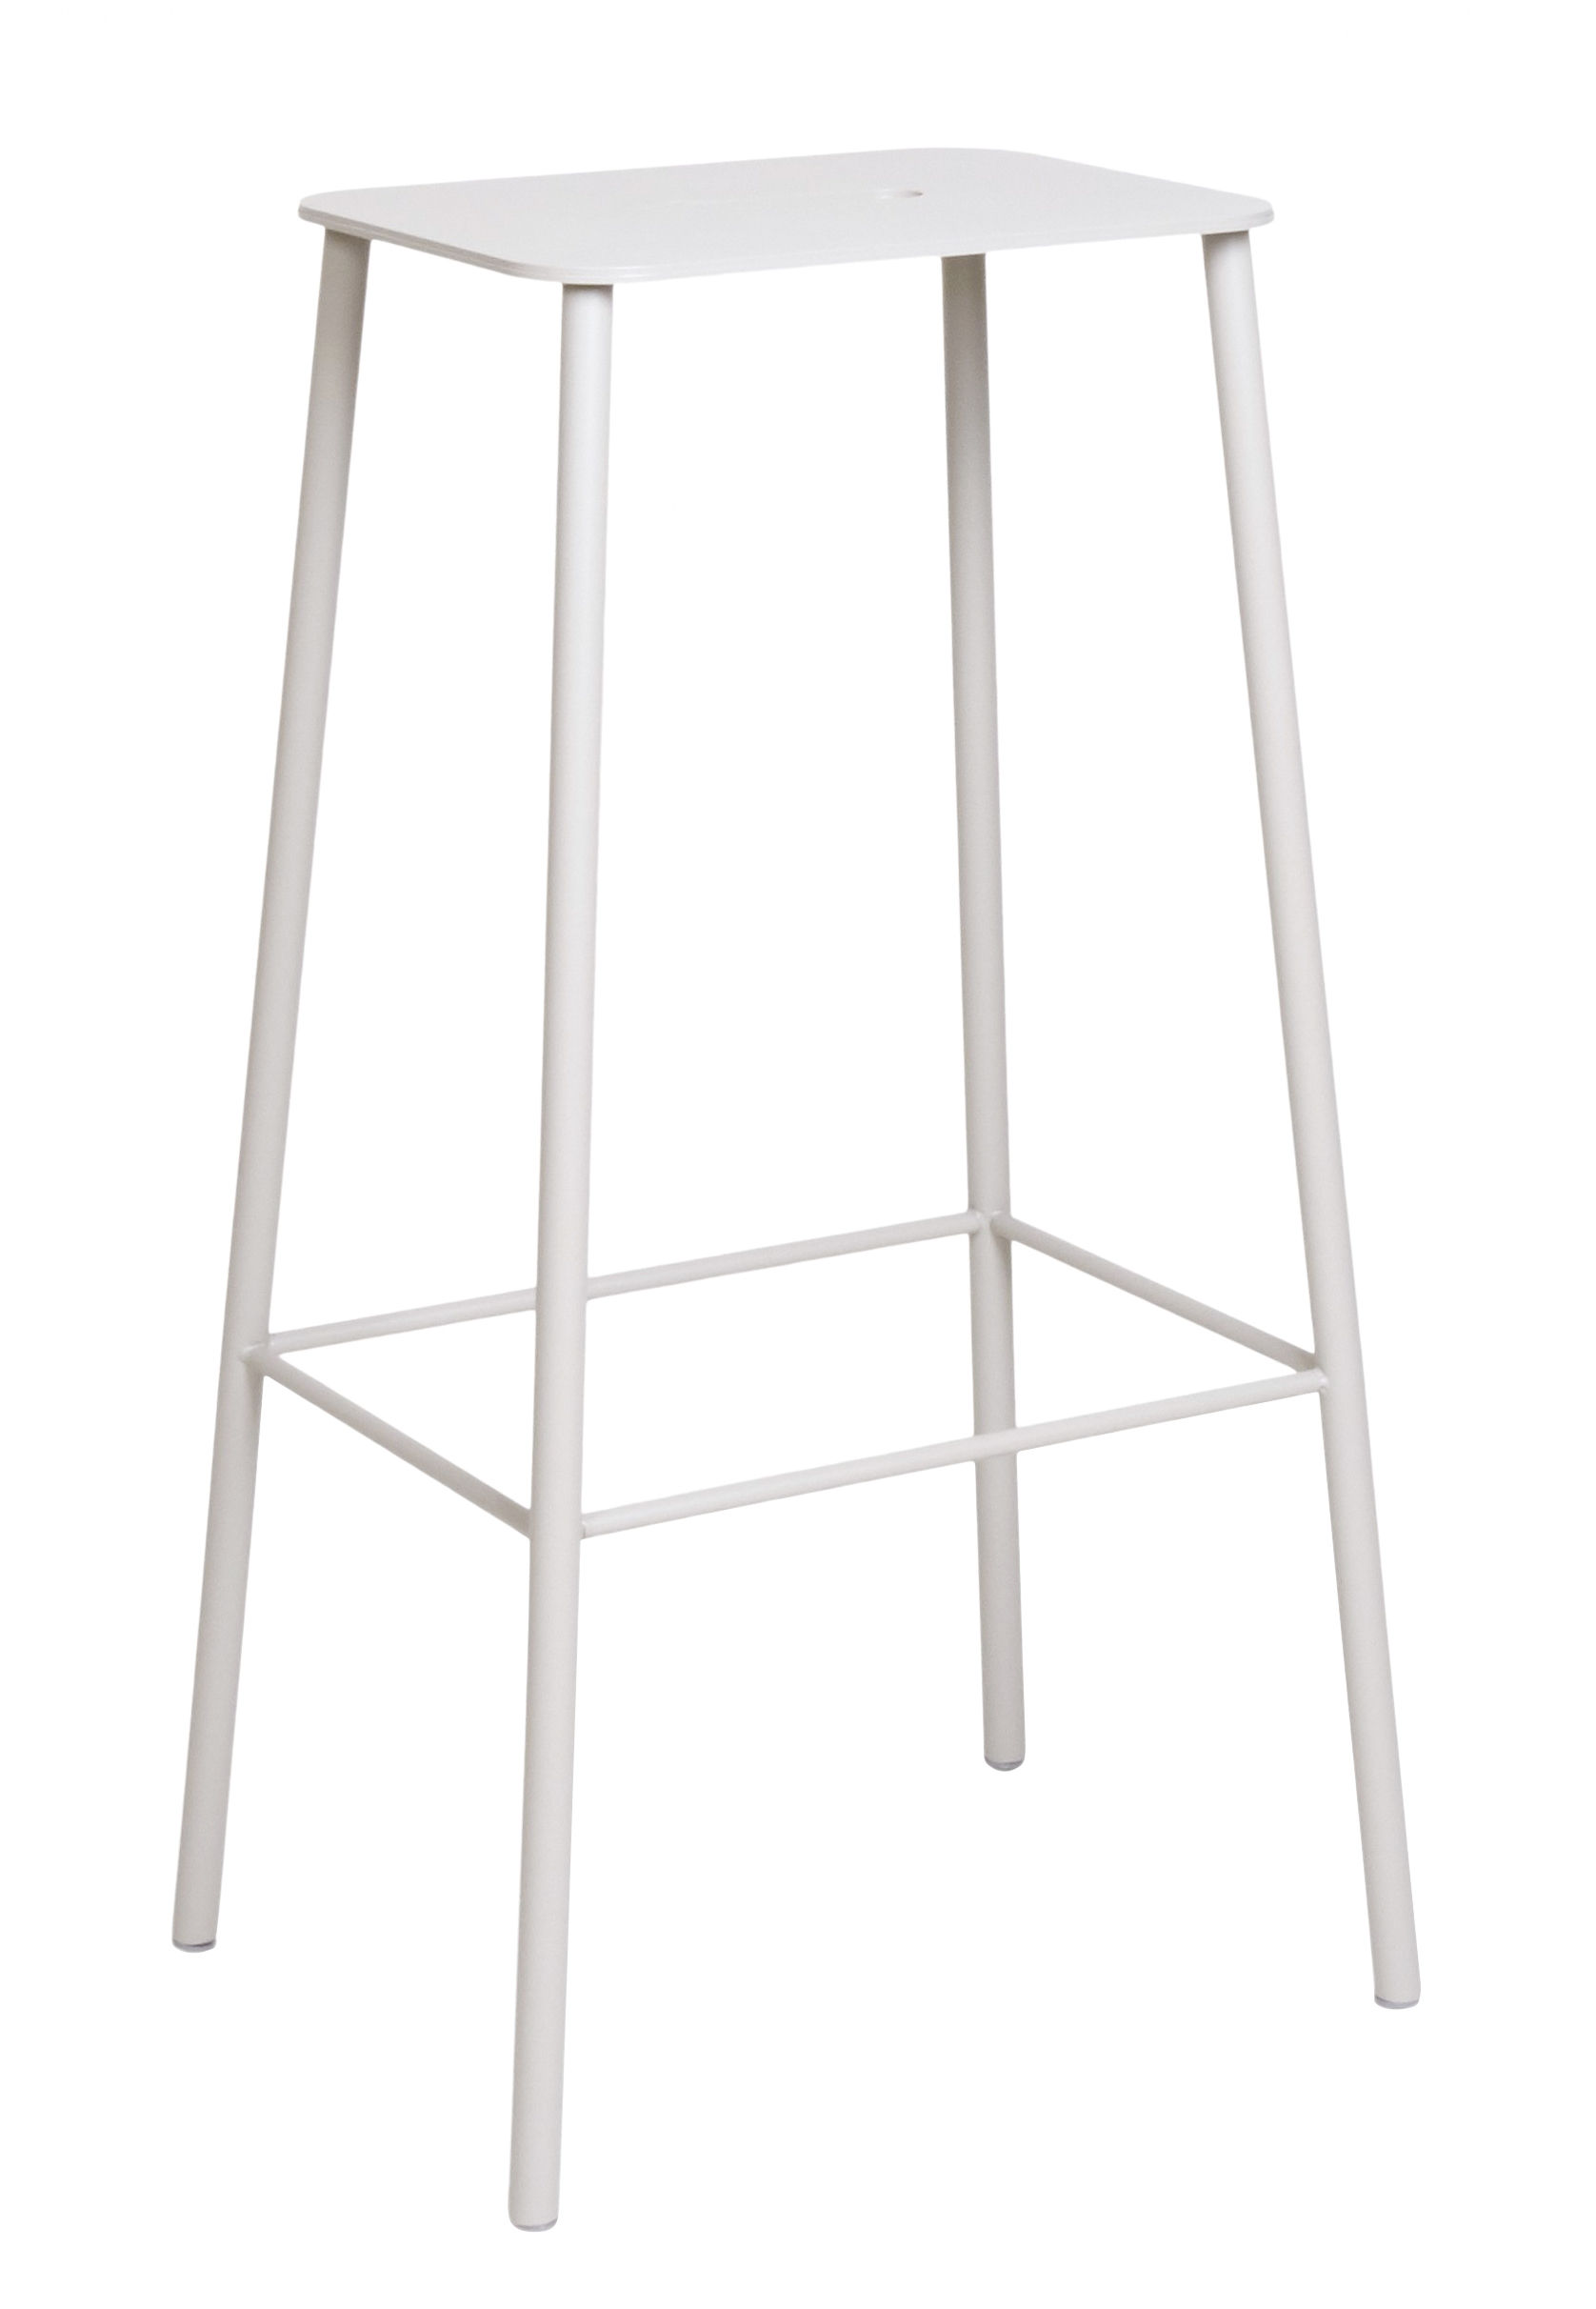 Furniture - Bar Stools - Adam Outdoor High stool - / H 76 cm by Frama  - Grey - Epoxy lacquered steel